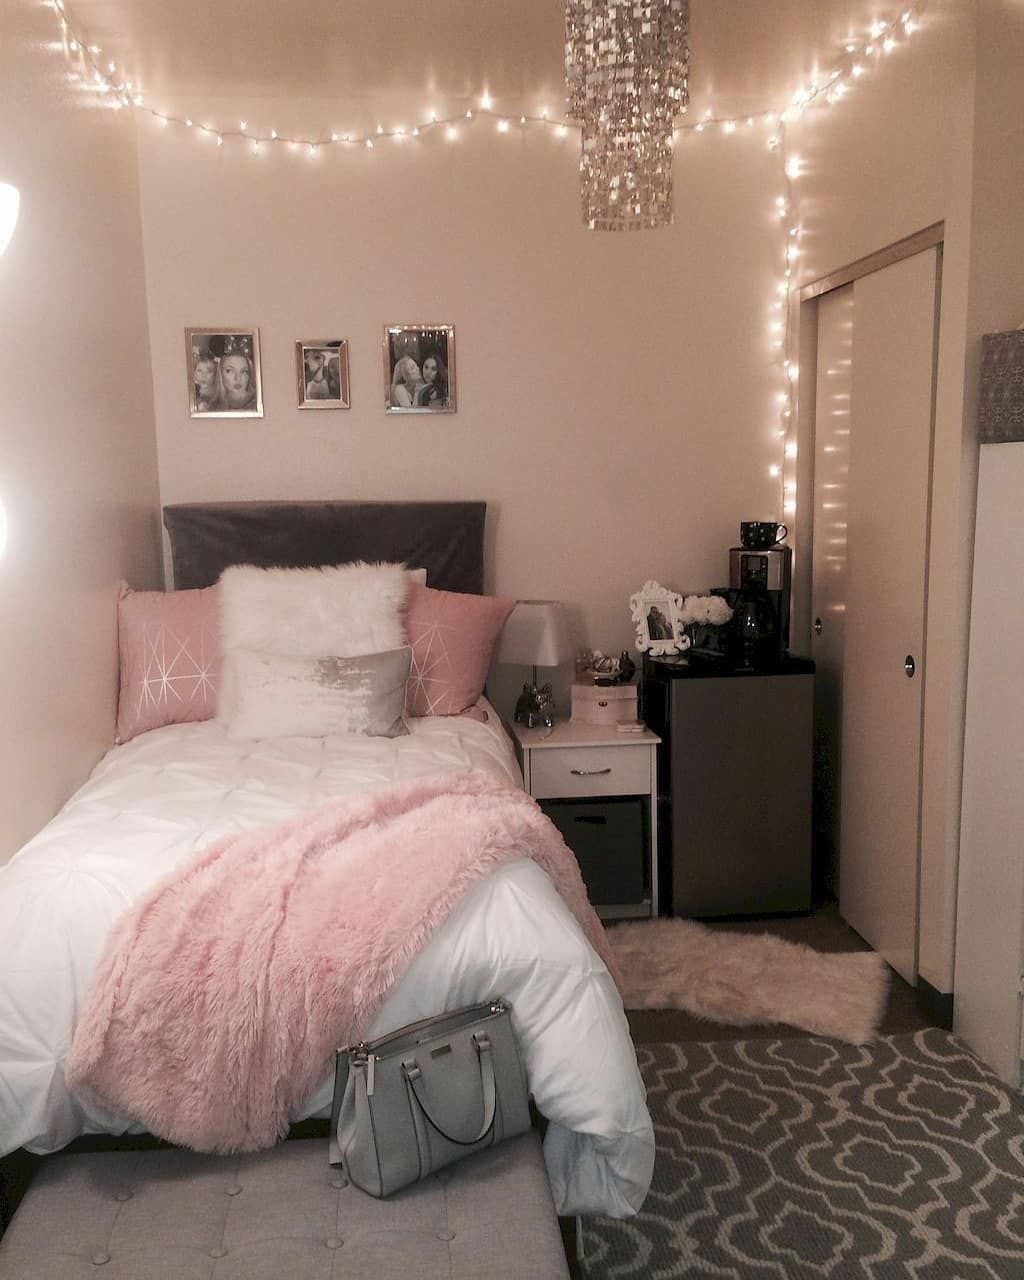 Bedroom Is The Place Where We Can Be Our Own Selves Without Any Inhibitions More Decorate It Well With Fu Dorm Room Decor